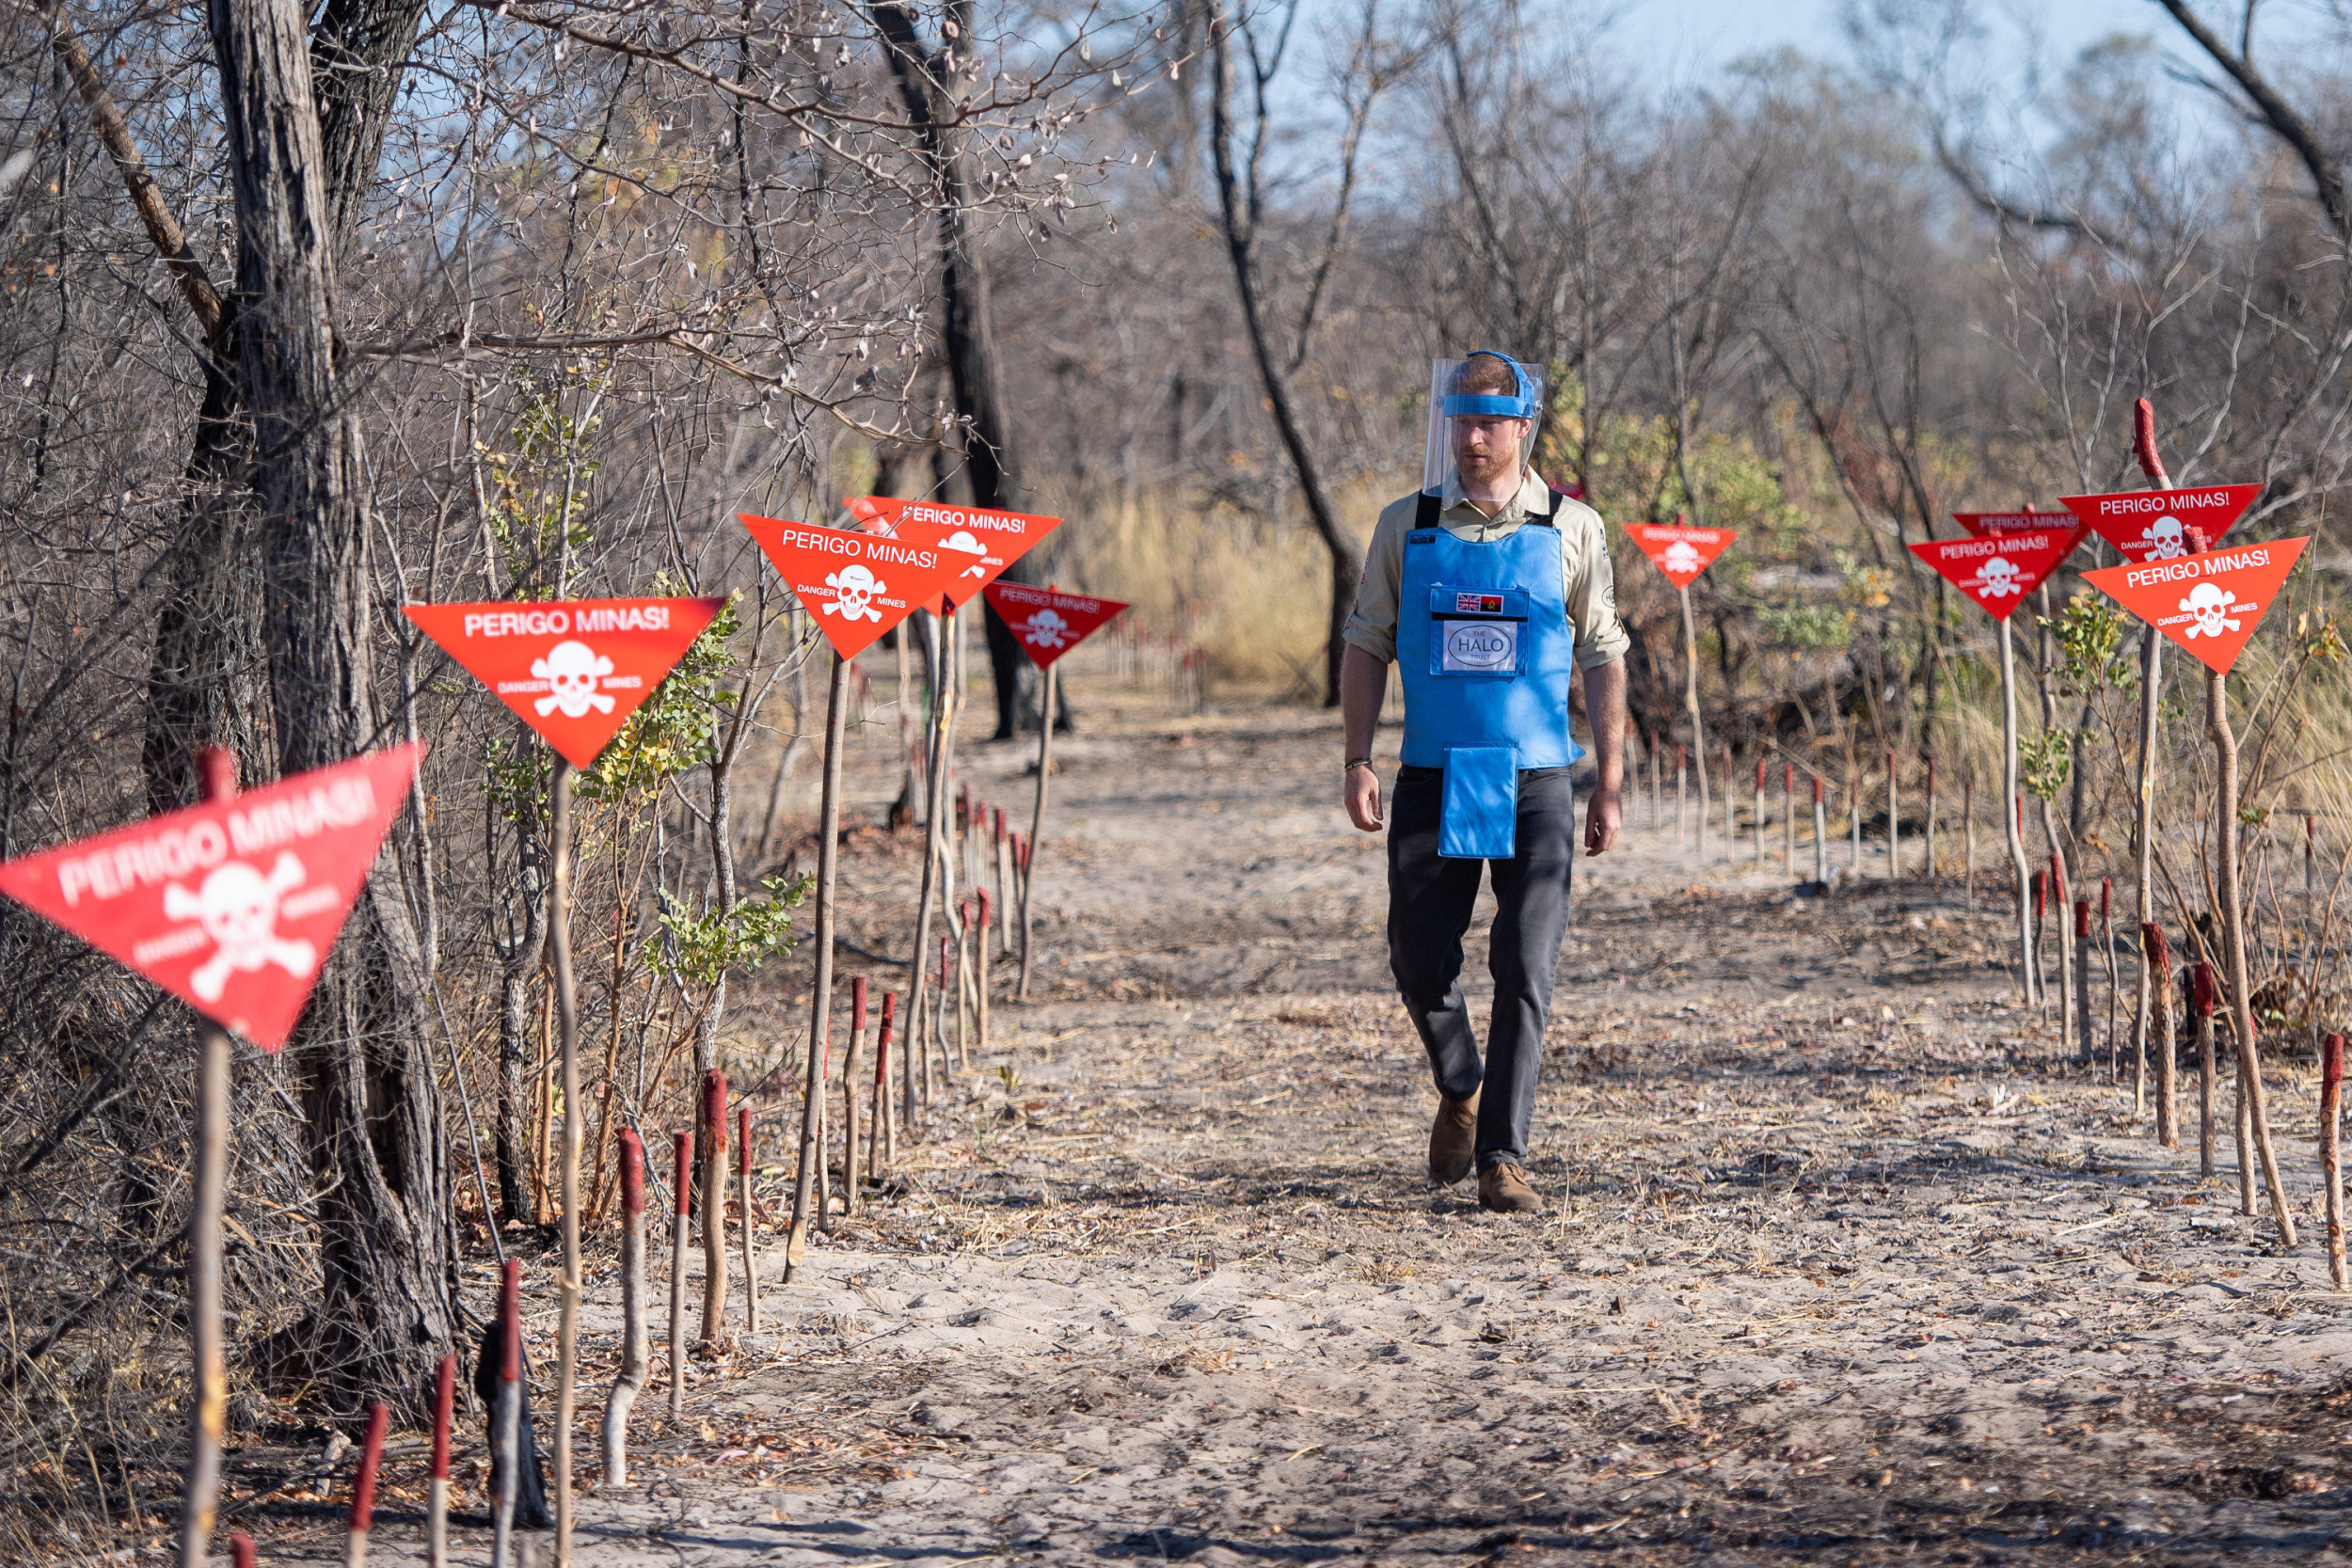 Harry walks through Angola minefield 22 years after Diana